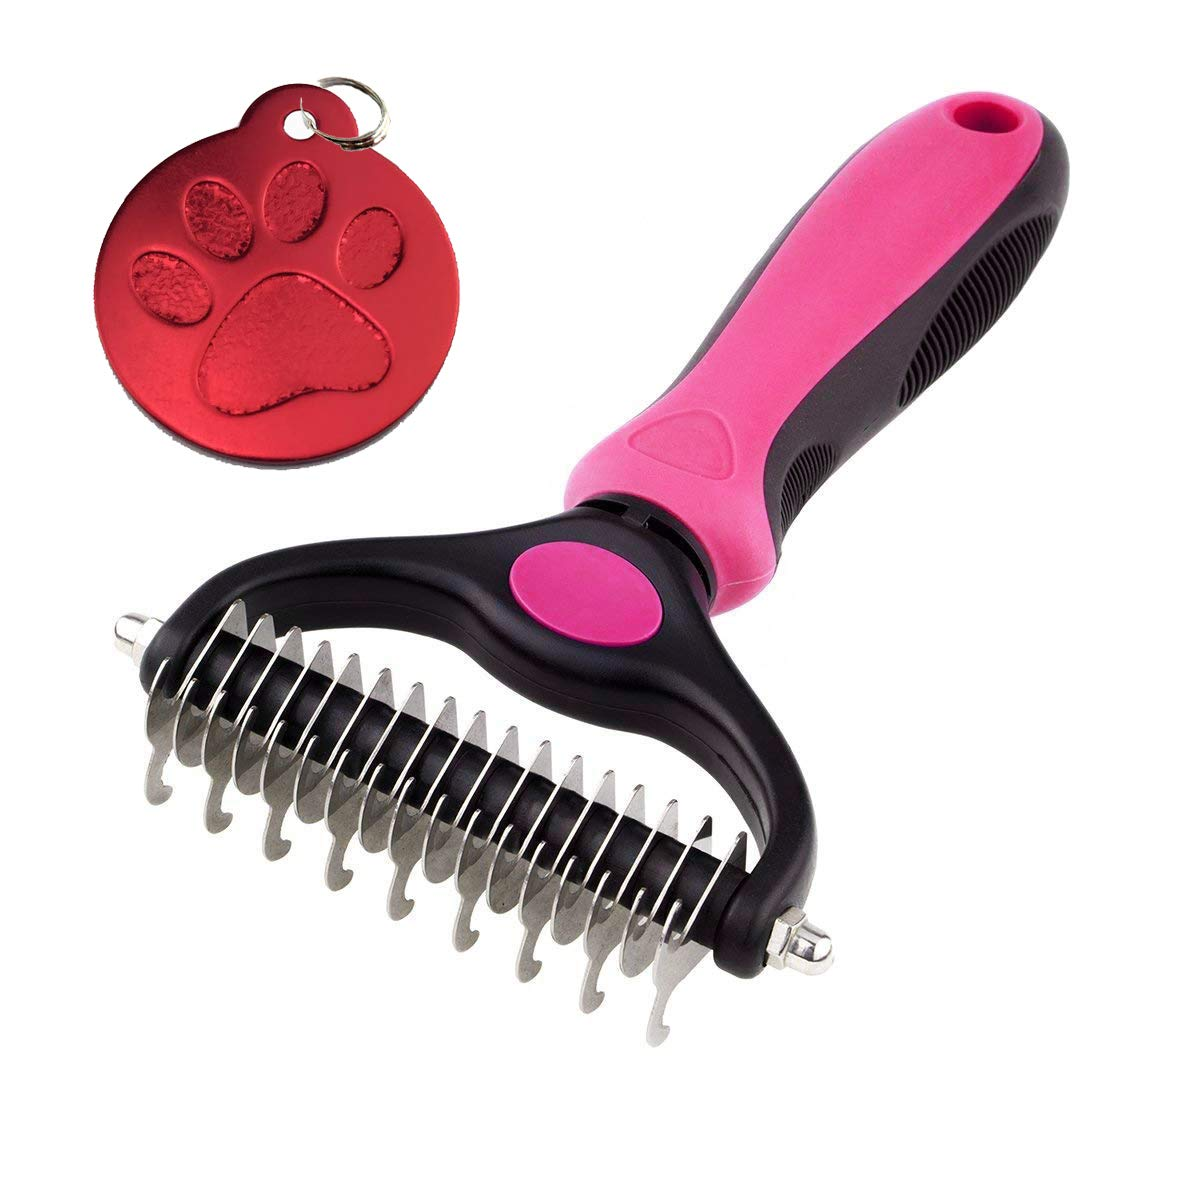 TinyPaw Professional Pet Dematting & Grooming 2 Sided Extra Wide Undercoat Rake for Easily Remove Cats & Dogs Loose Hair - Safe Dematting & Deshedding Comb for Easy Mats & Knot Removing